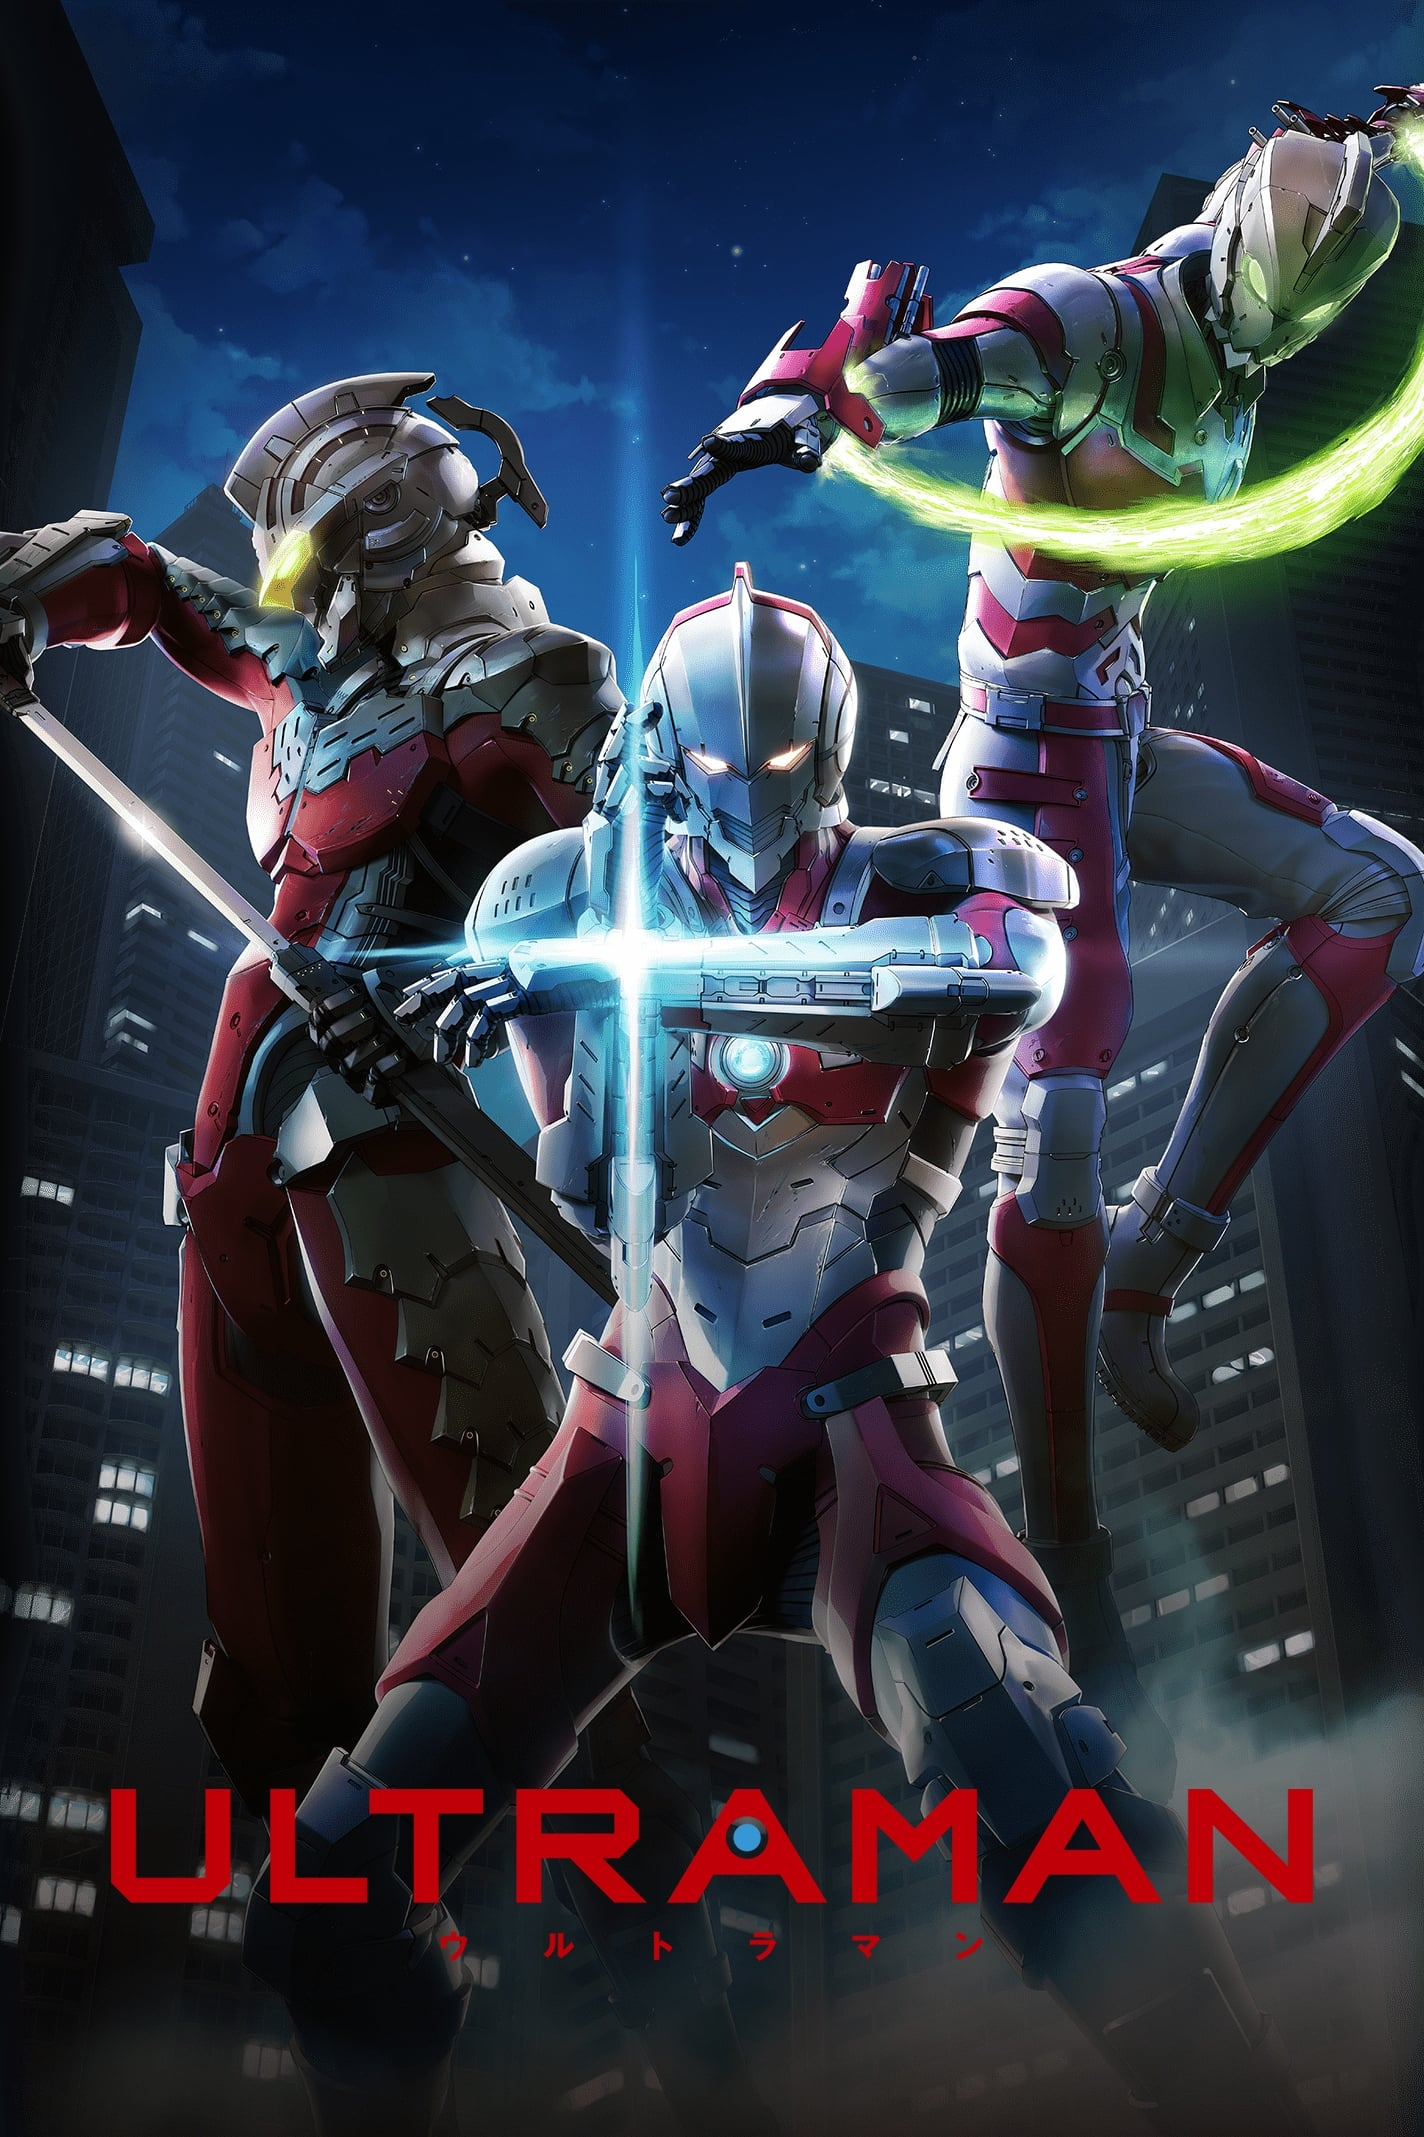 Ultraman S1 EP9 (2019) Subtitle Indonesia